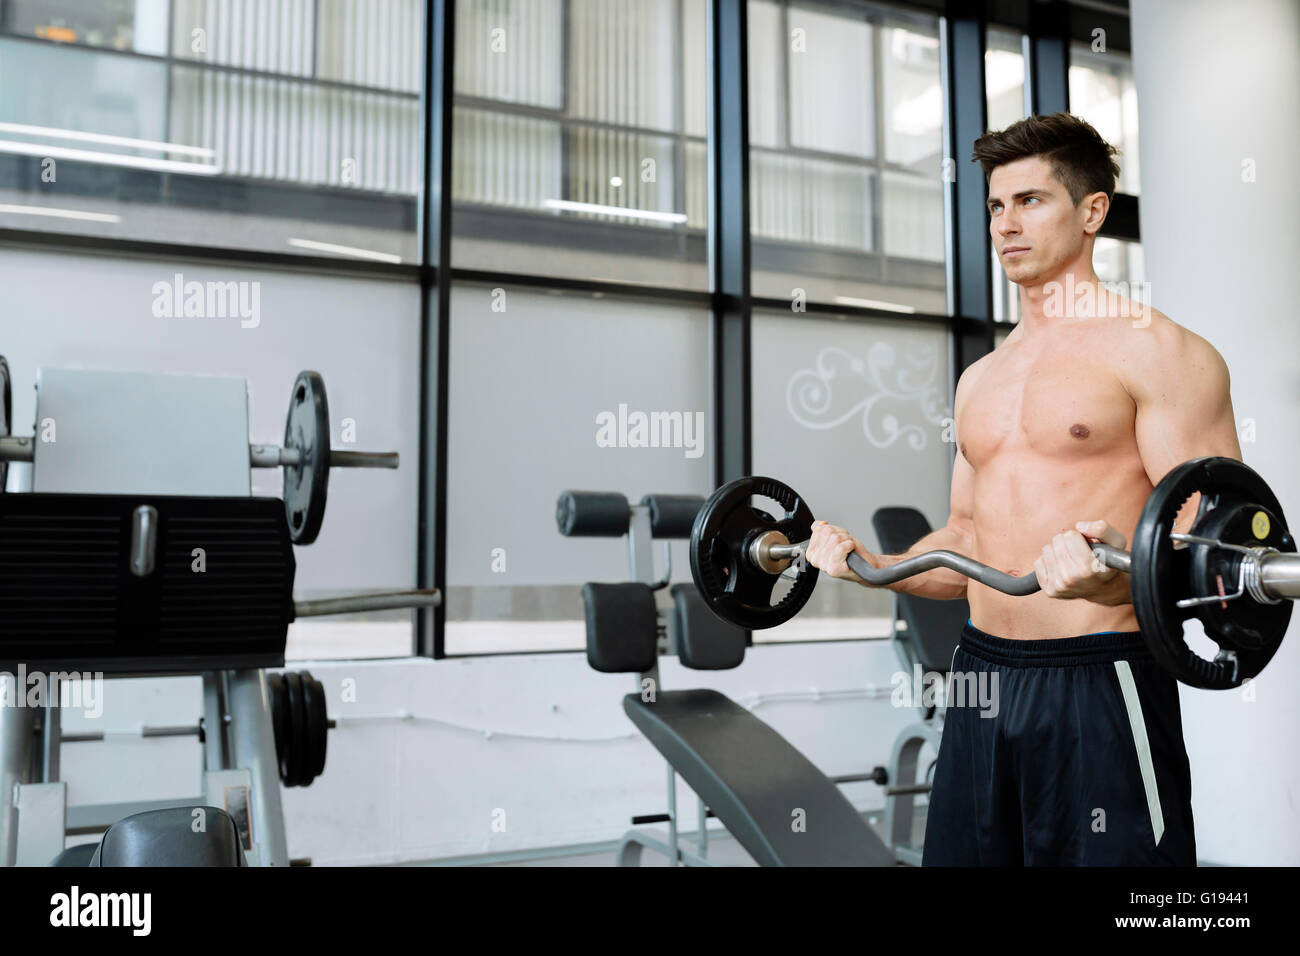 Muscular man bodybuilding in gym, lifting weights - Stock Image